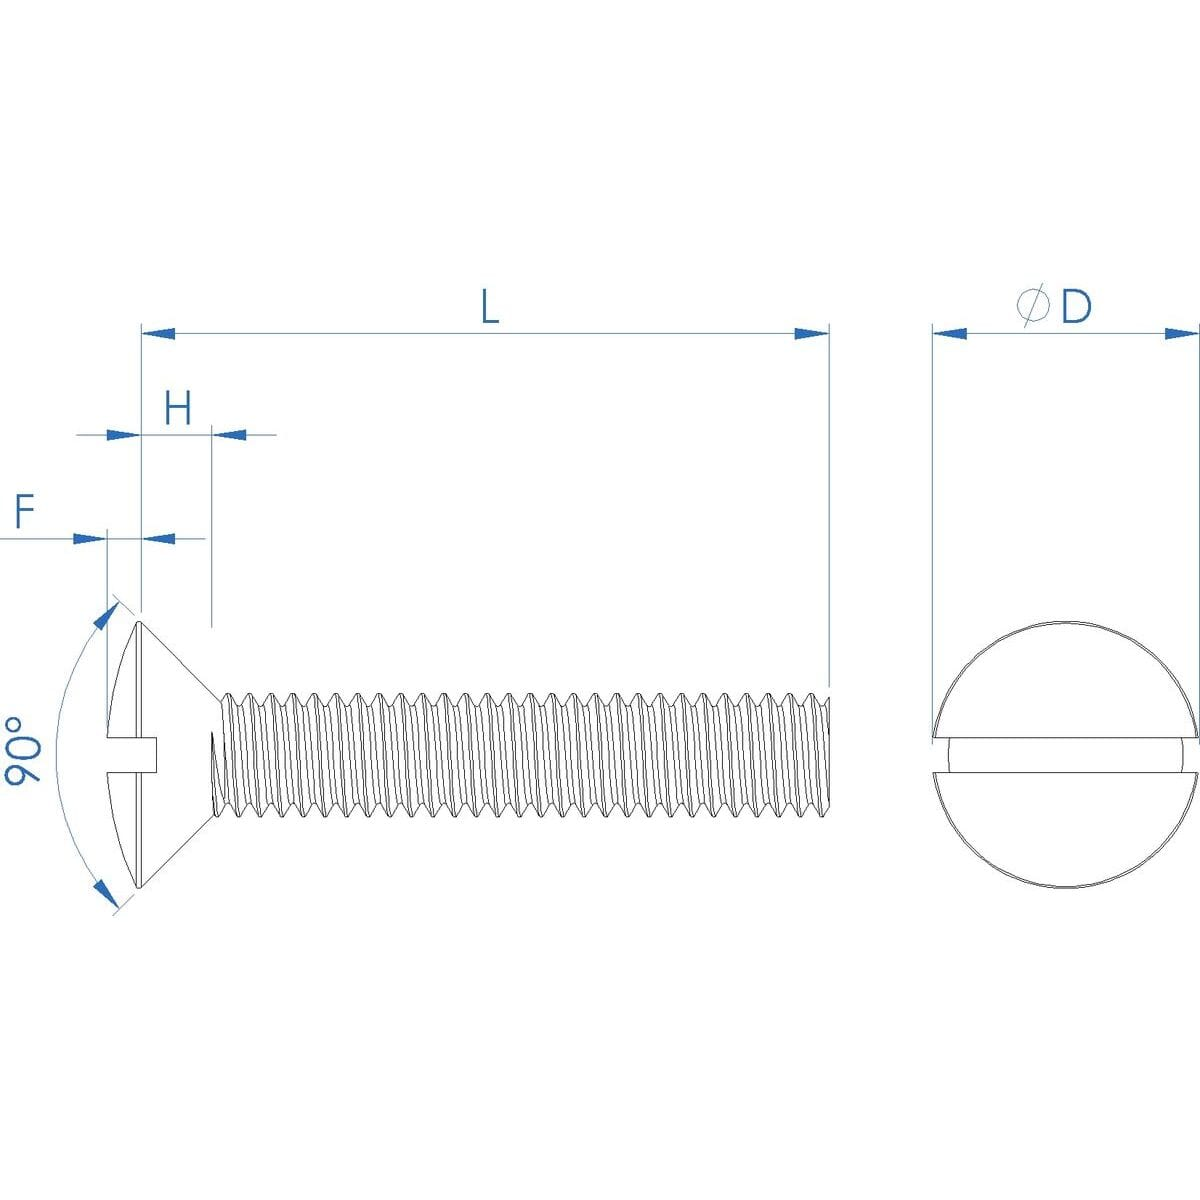 M5 x 90mm Raised Slotted Countersunk Screws (DIN 964) - Marine Stainless Steel (A4) Drawing